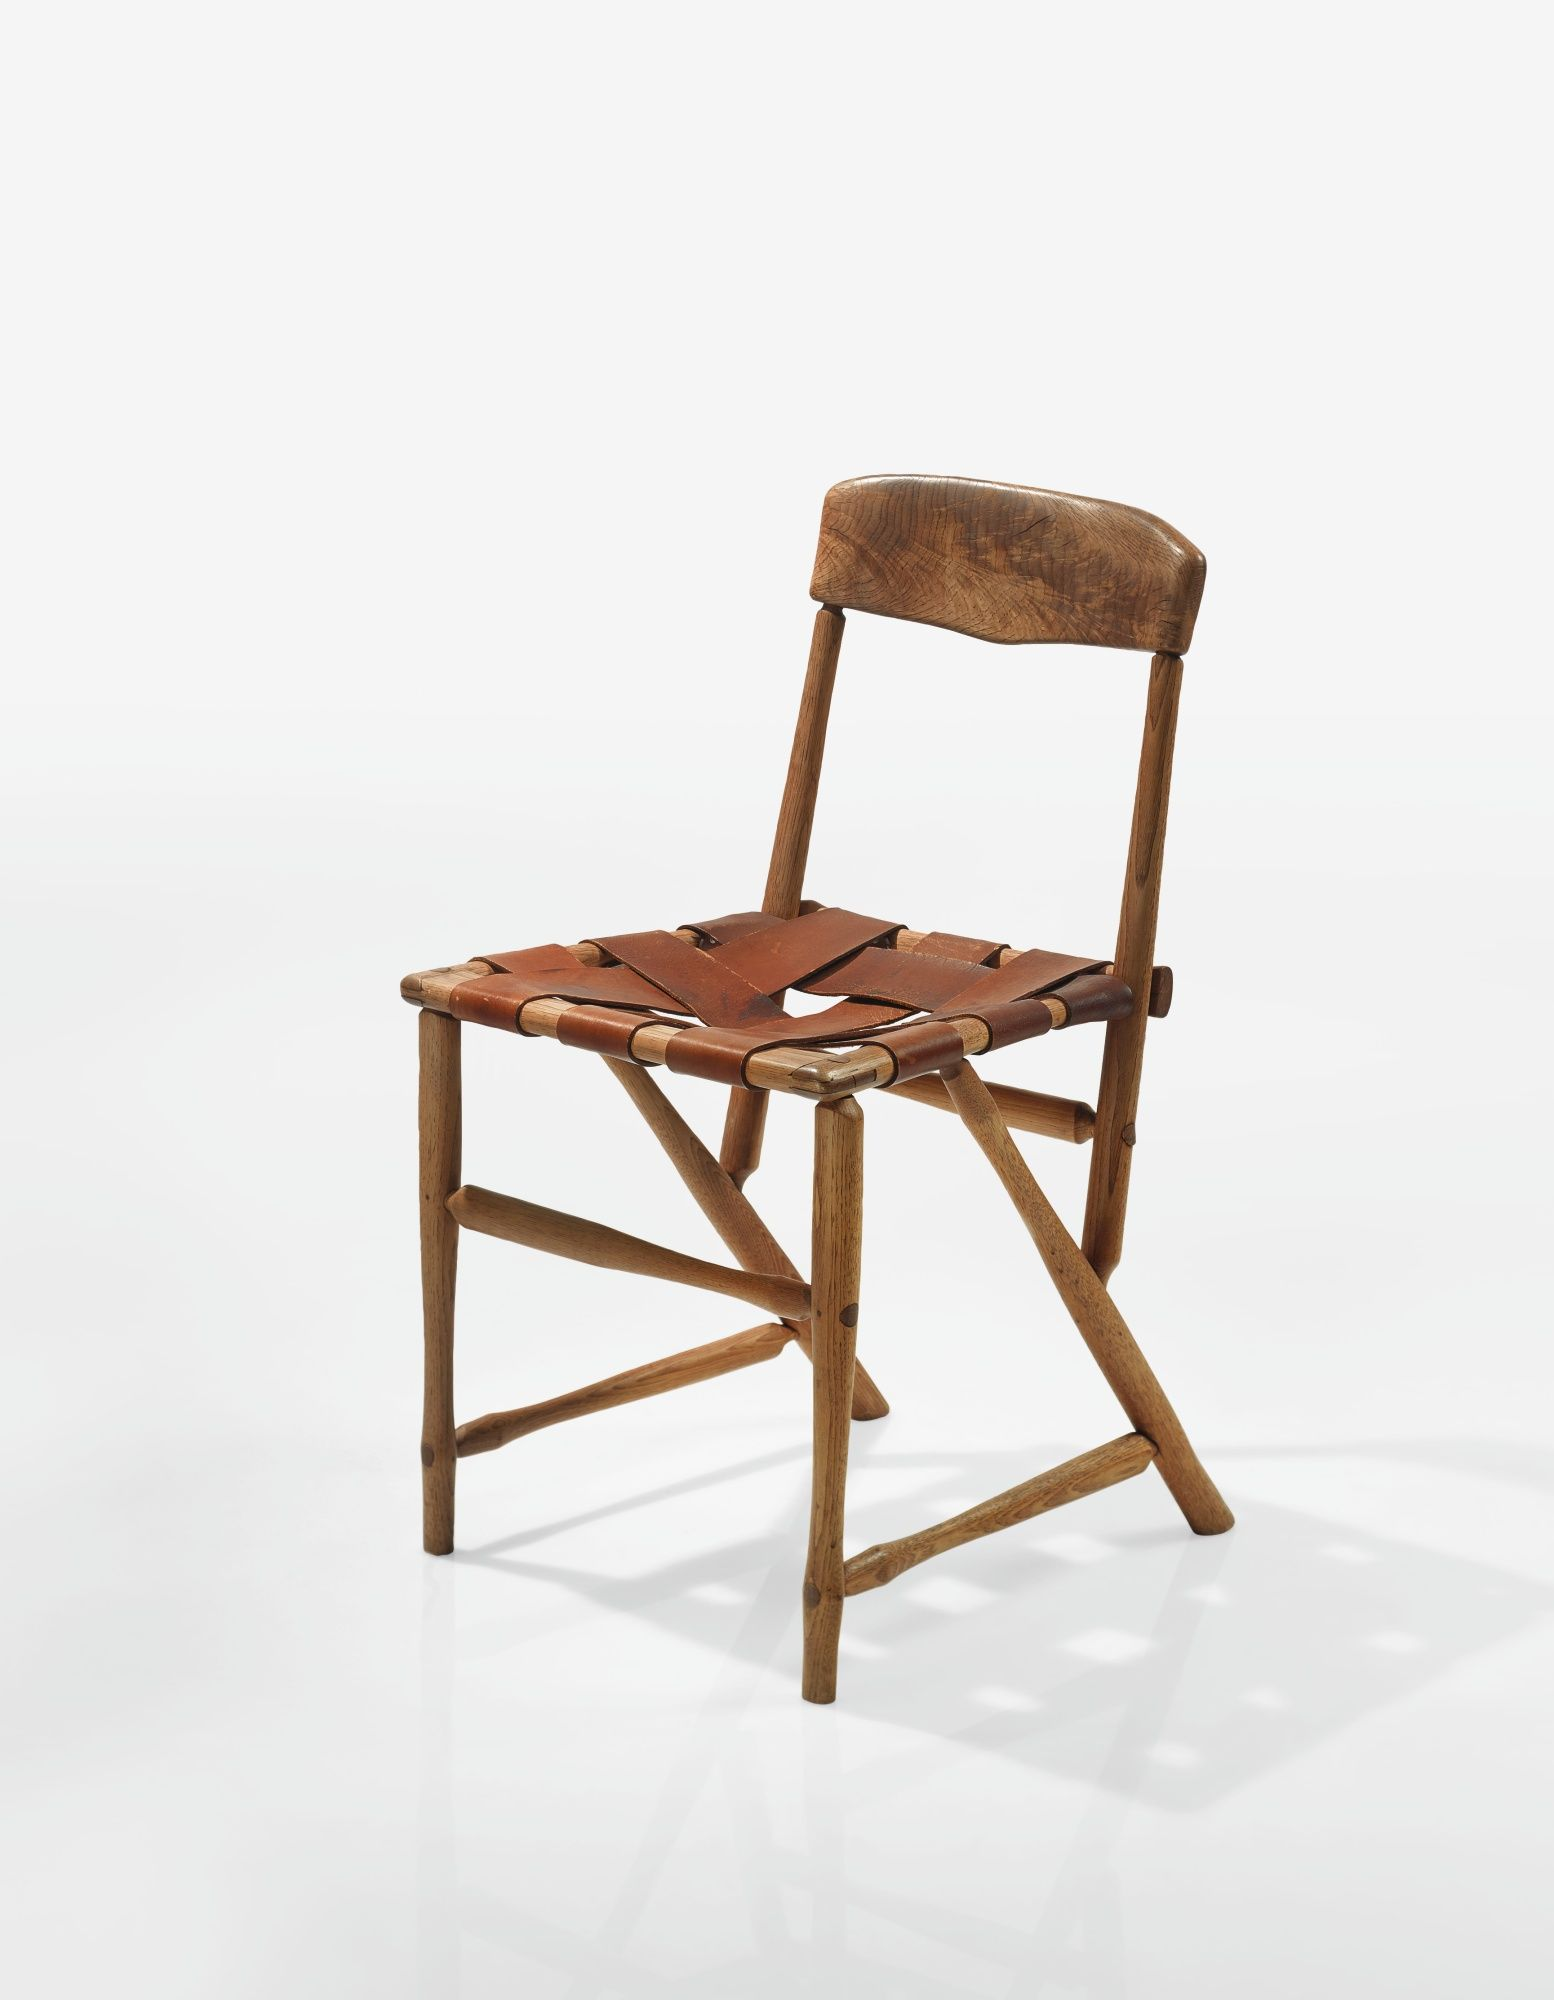 Wharton Esherick Side Chair 1935 Oak And Leather Sotheby S Furniture Chair Leather Wood Chair Chair